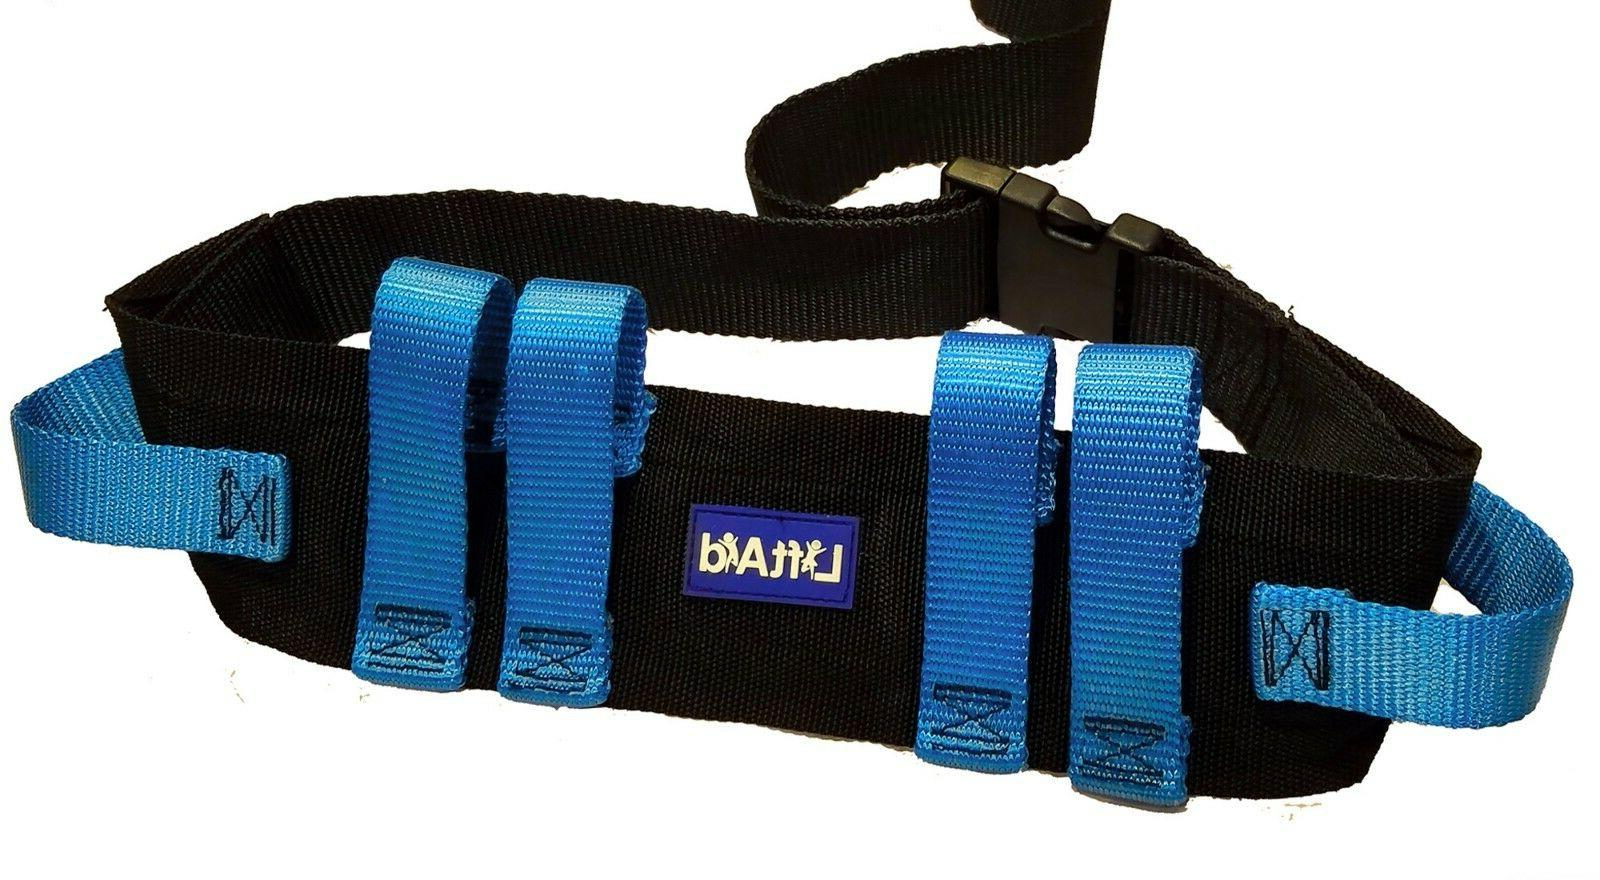 Gait Belt for Transfer & Walking with 6 Hand Grips Quick-Rel